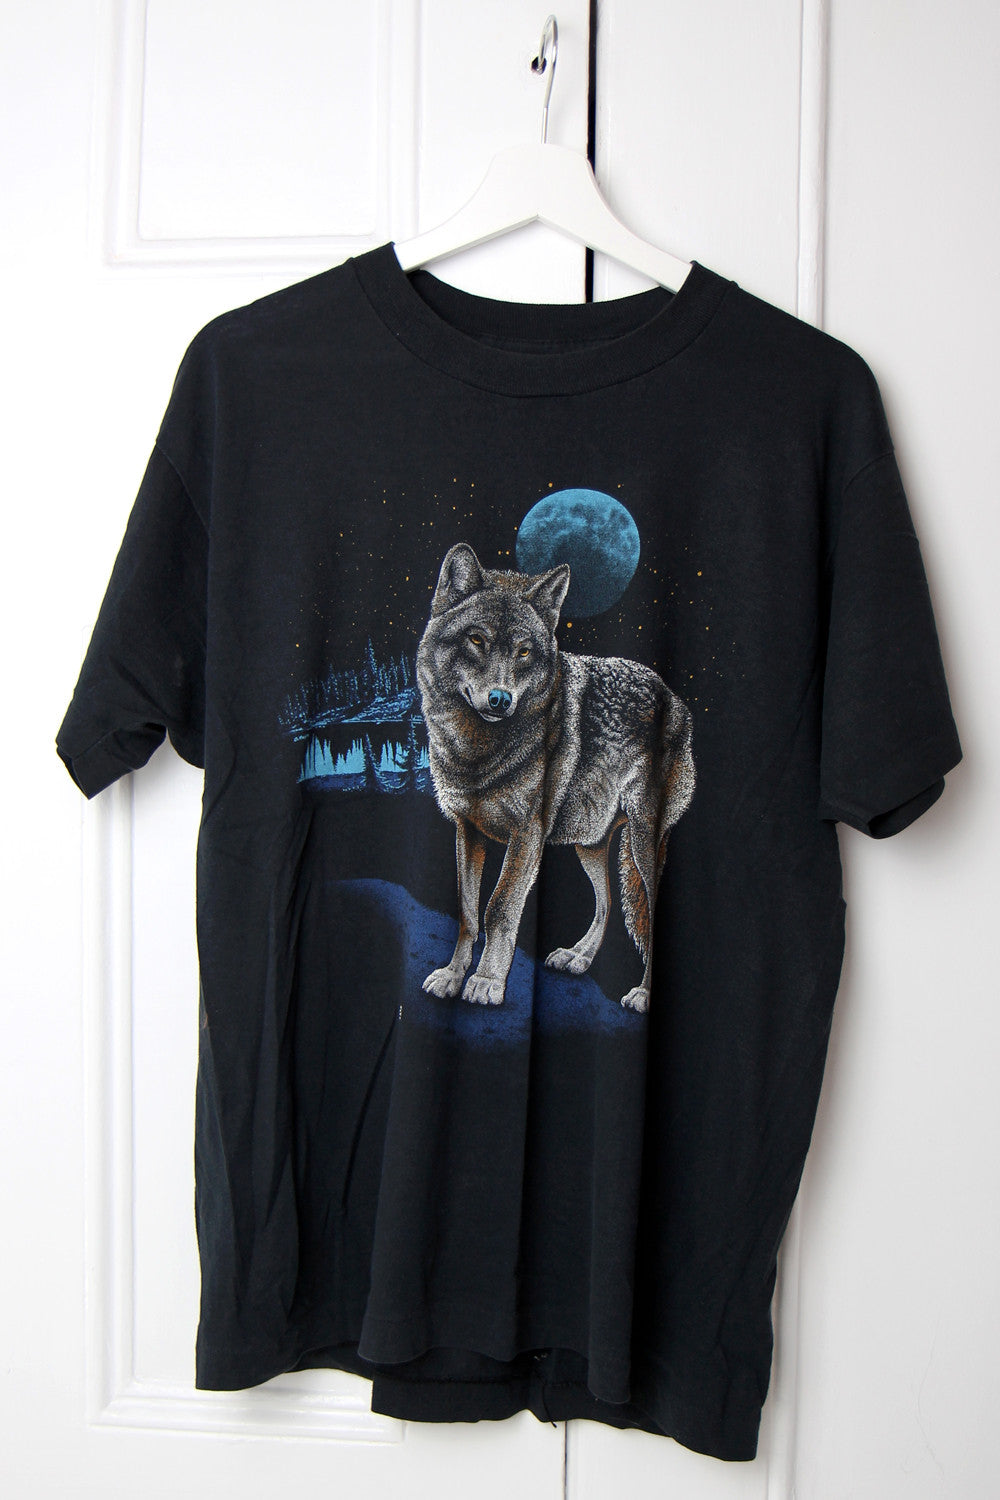 Original 1980s Tissue Thin Wolf T-shirt